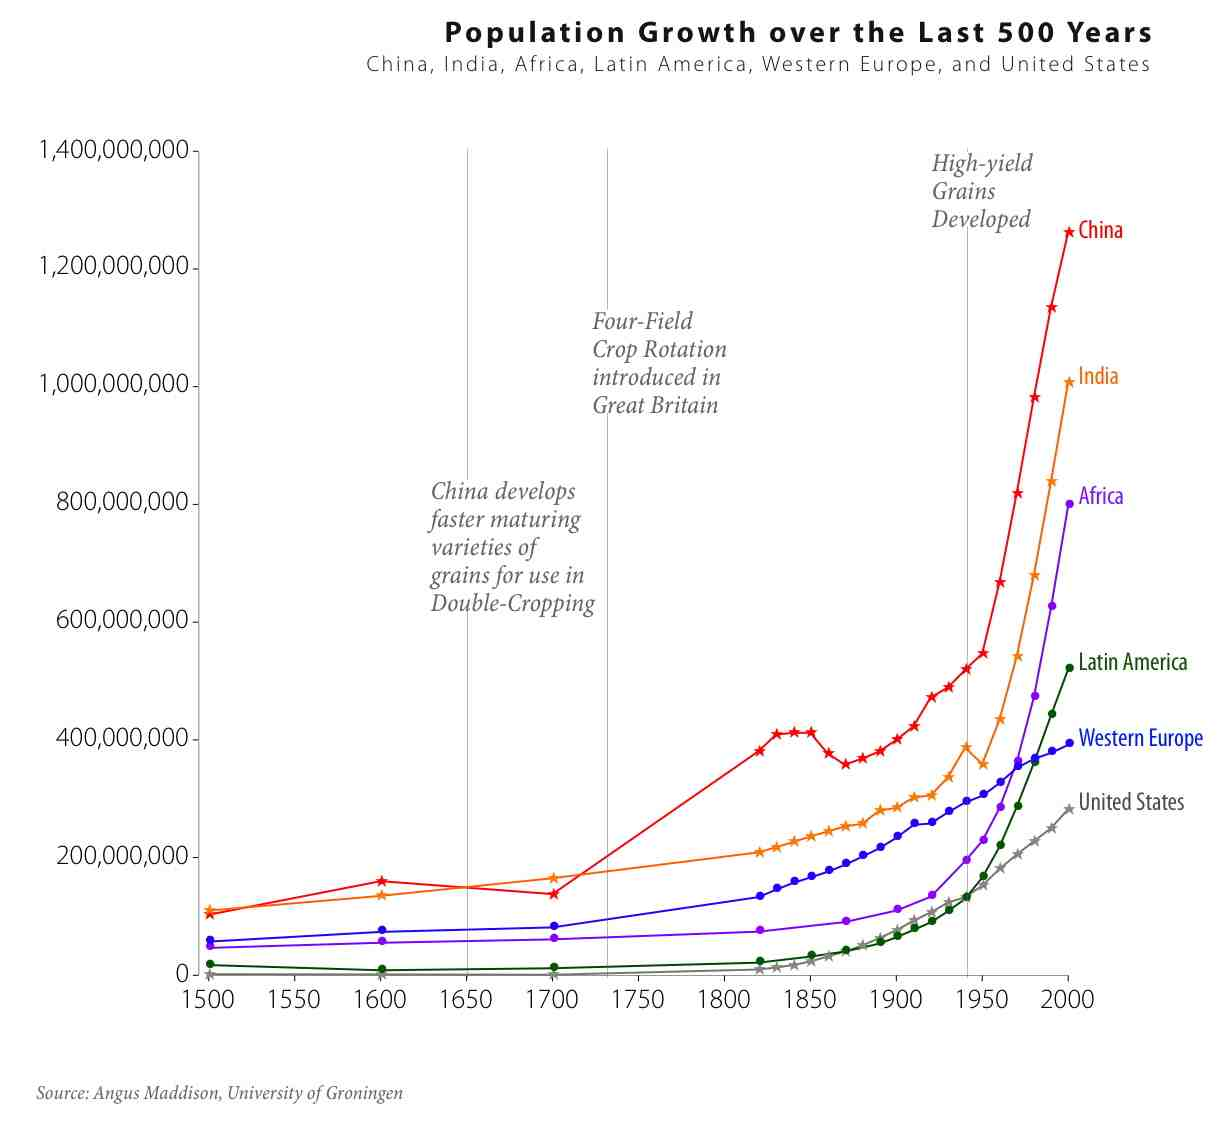 A graph comparing China, India, Africa, Latin America, Western Europe, and the United State's population growth over 500 years